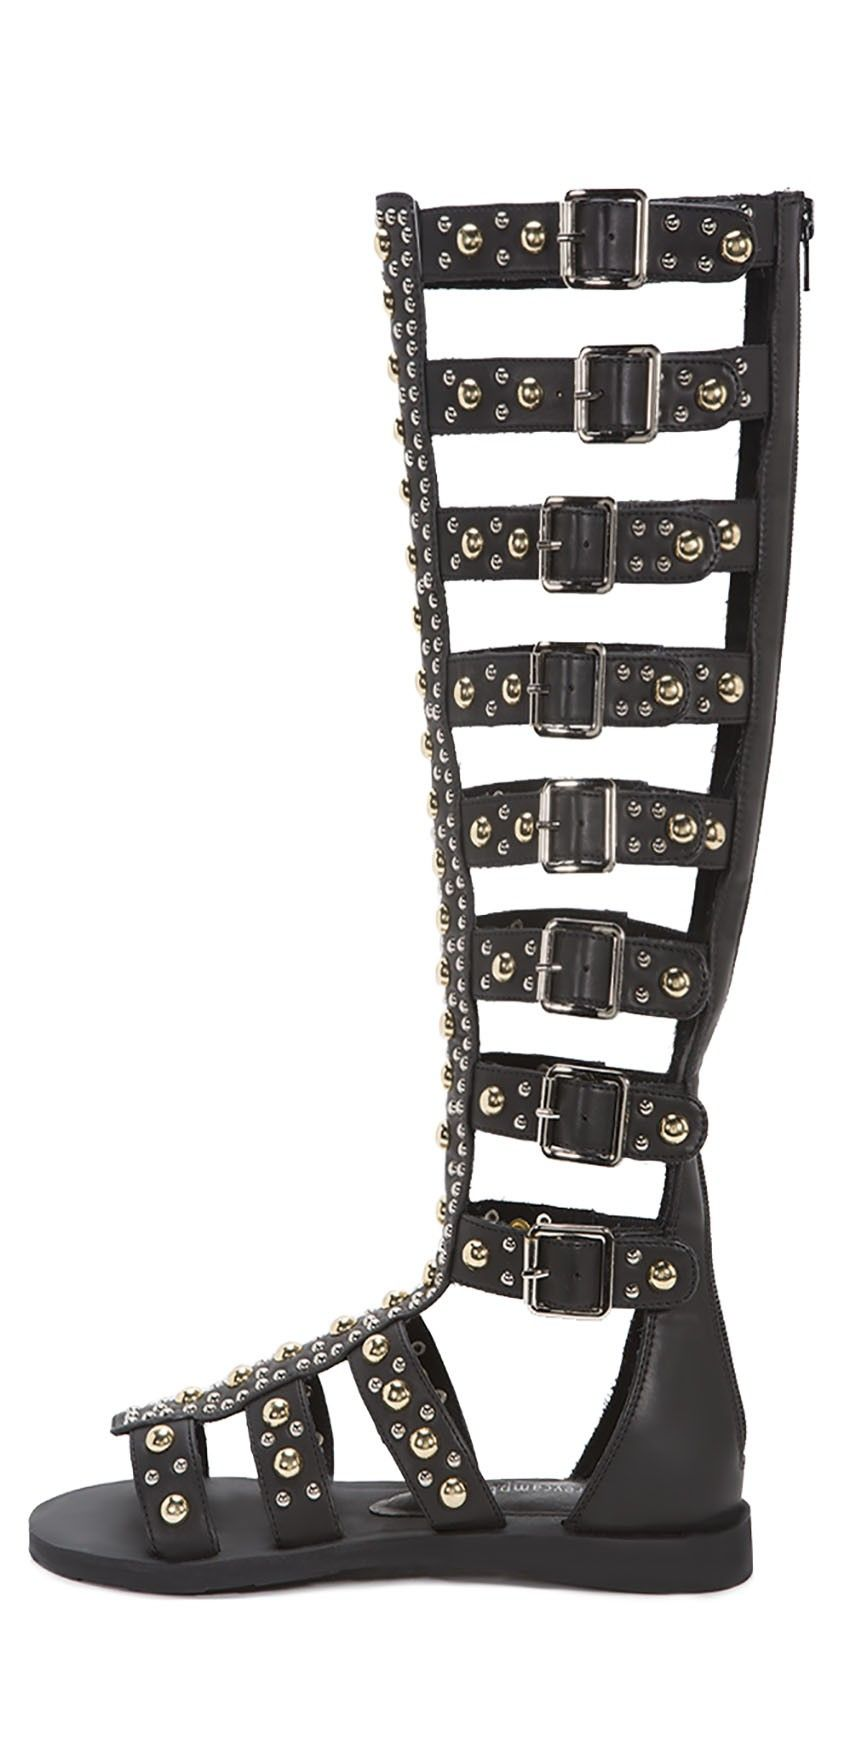 1a1257d7c617 Jeffrey Campbell Shoes IZMIR-STUD Sandals in Black Multi Jeffrey Campbell  Sandals